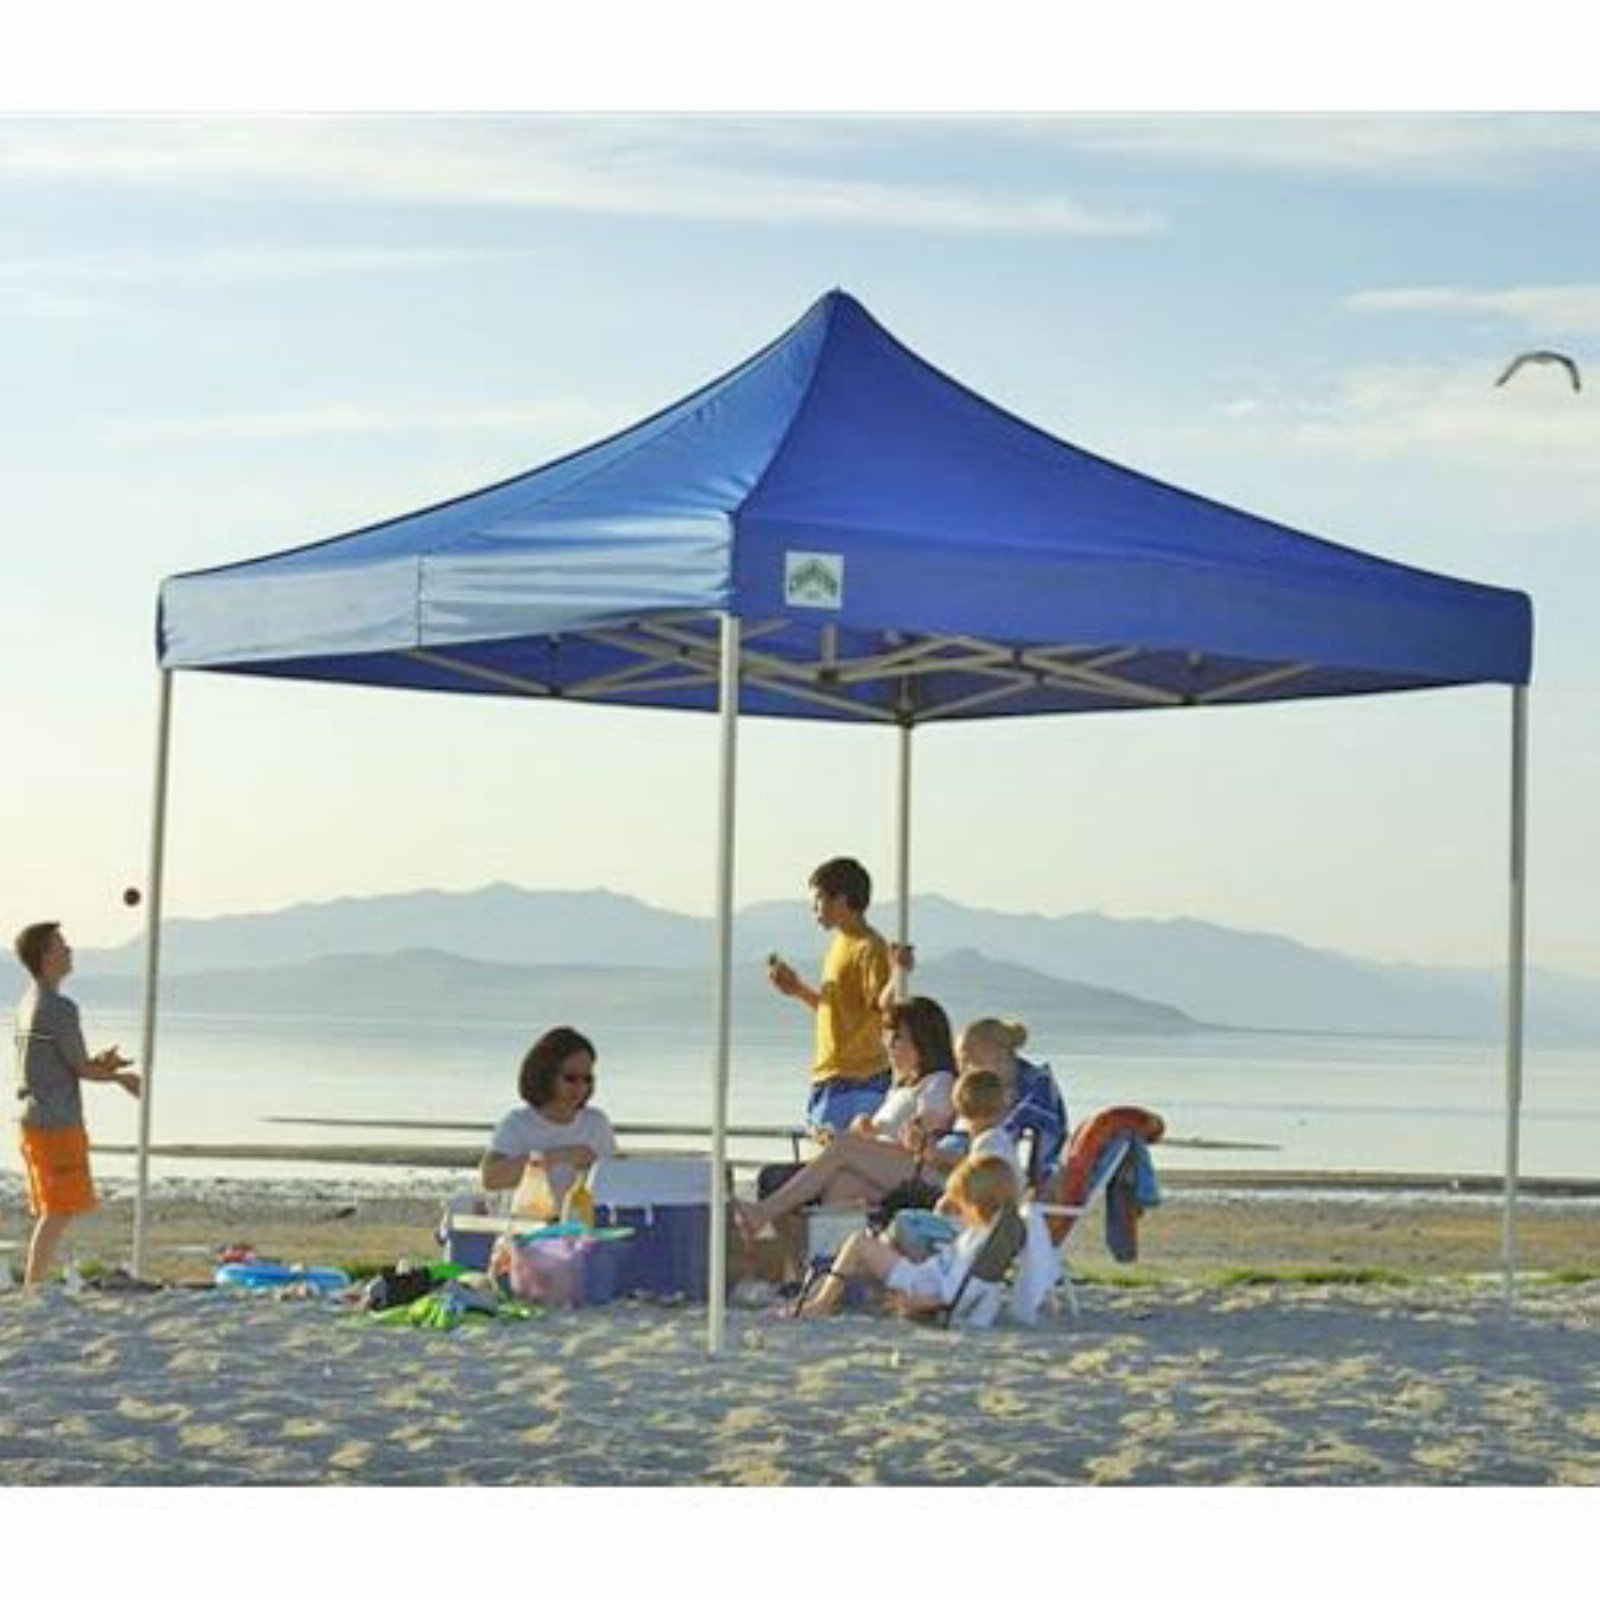 Caravan Sports 8 x 8 ft. Display-Shade 500 Denier Commercial Canopy